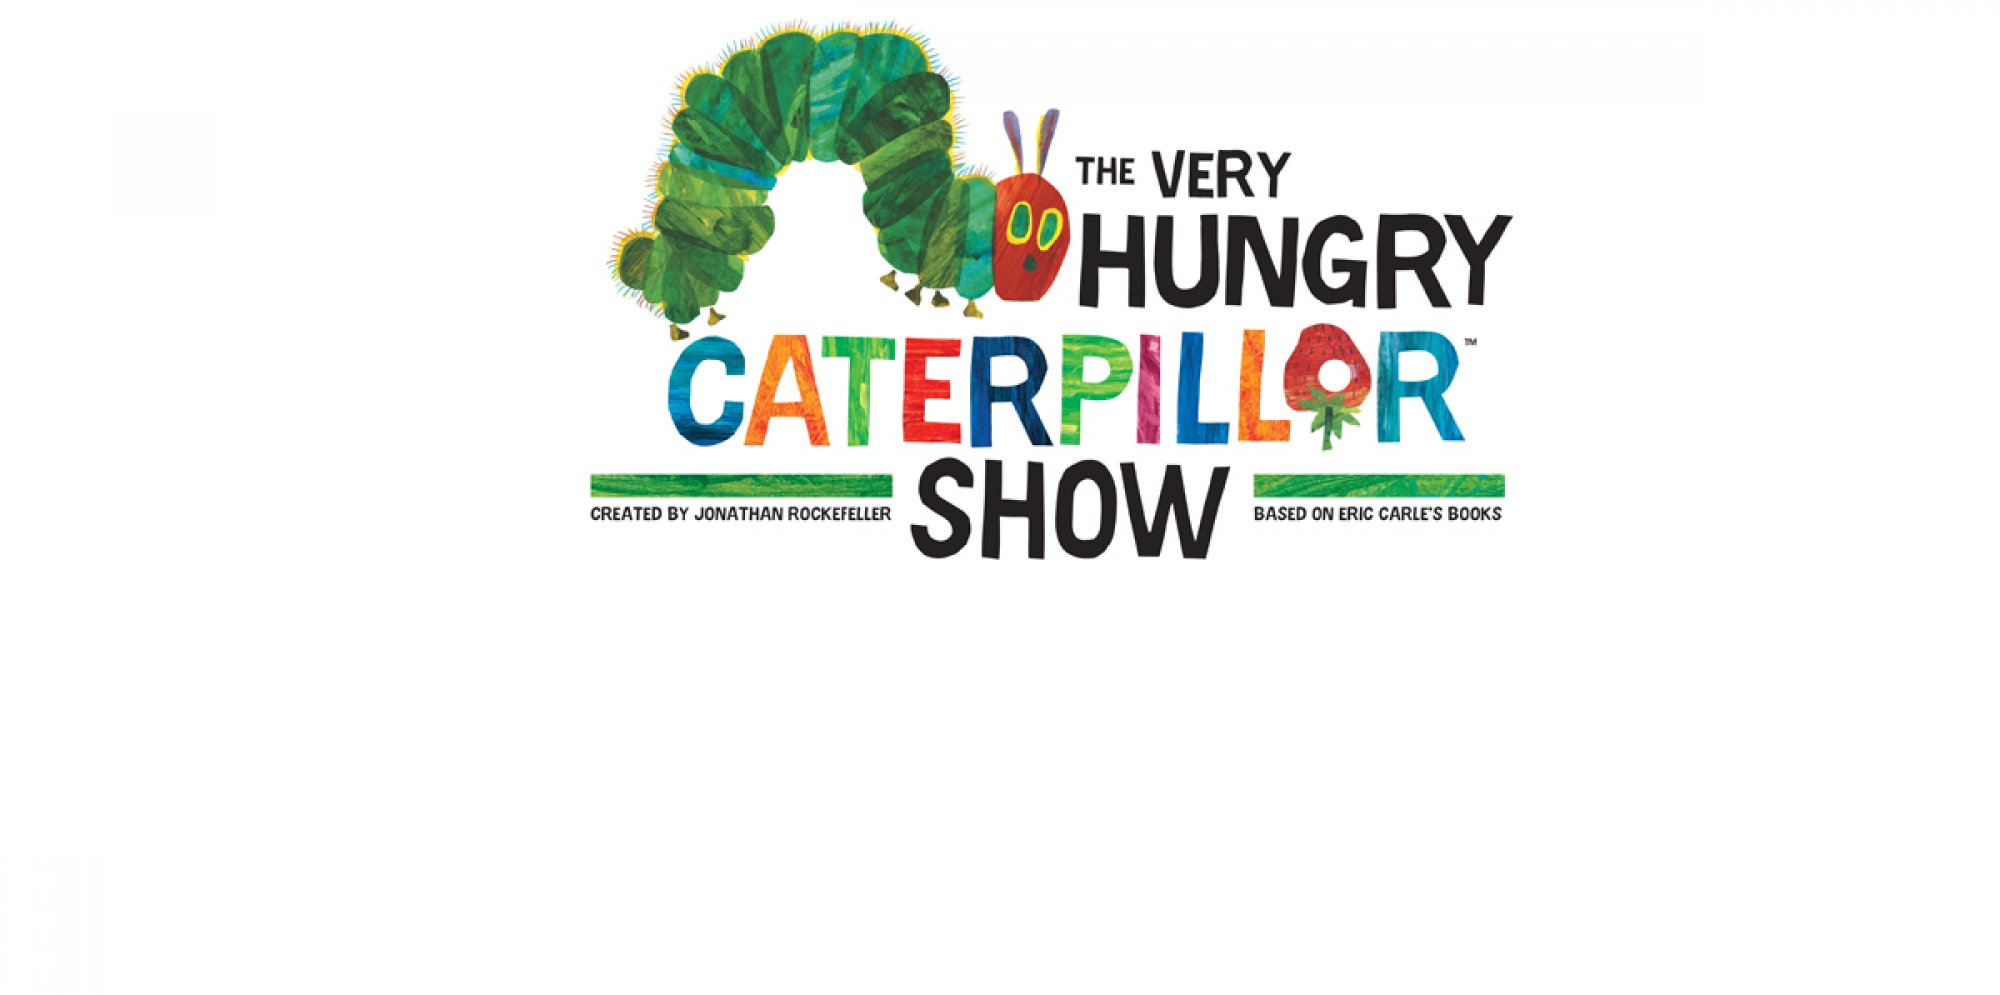 The Very Hungry Caterpillar Show: an image of a cartoon caterpillar is centre with the title of the show underneath it